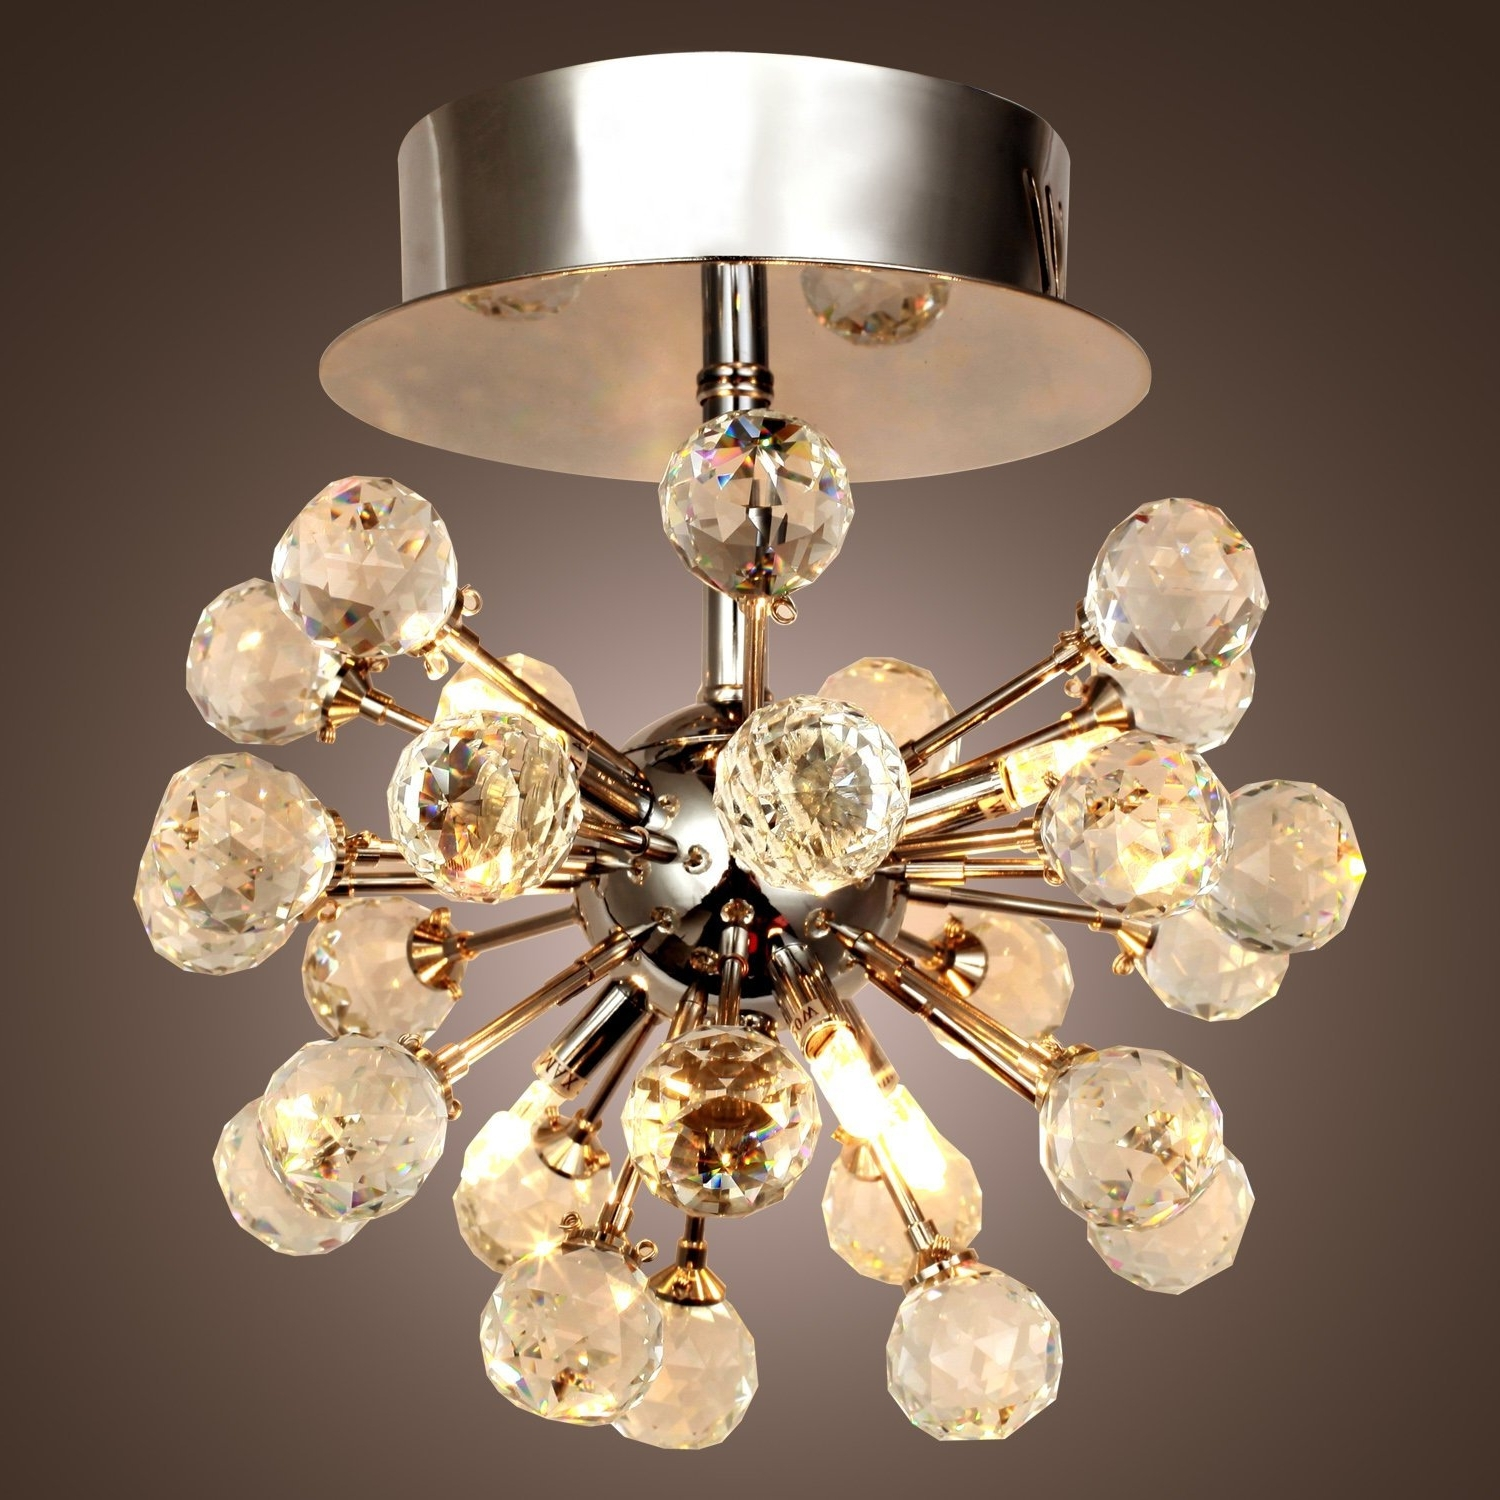 Short Chandeliers Pertaining To Most Recently Released Lightinthebox Max 10W K9 Crystal Chandelier With 6 Lights In Globe (View 3 of 15)